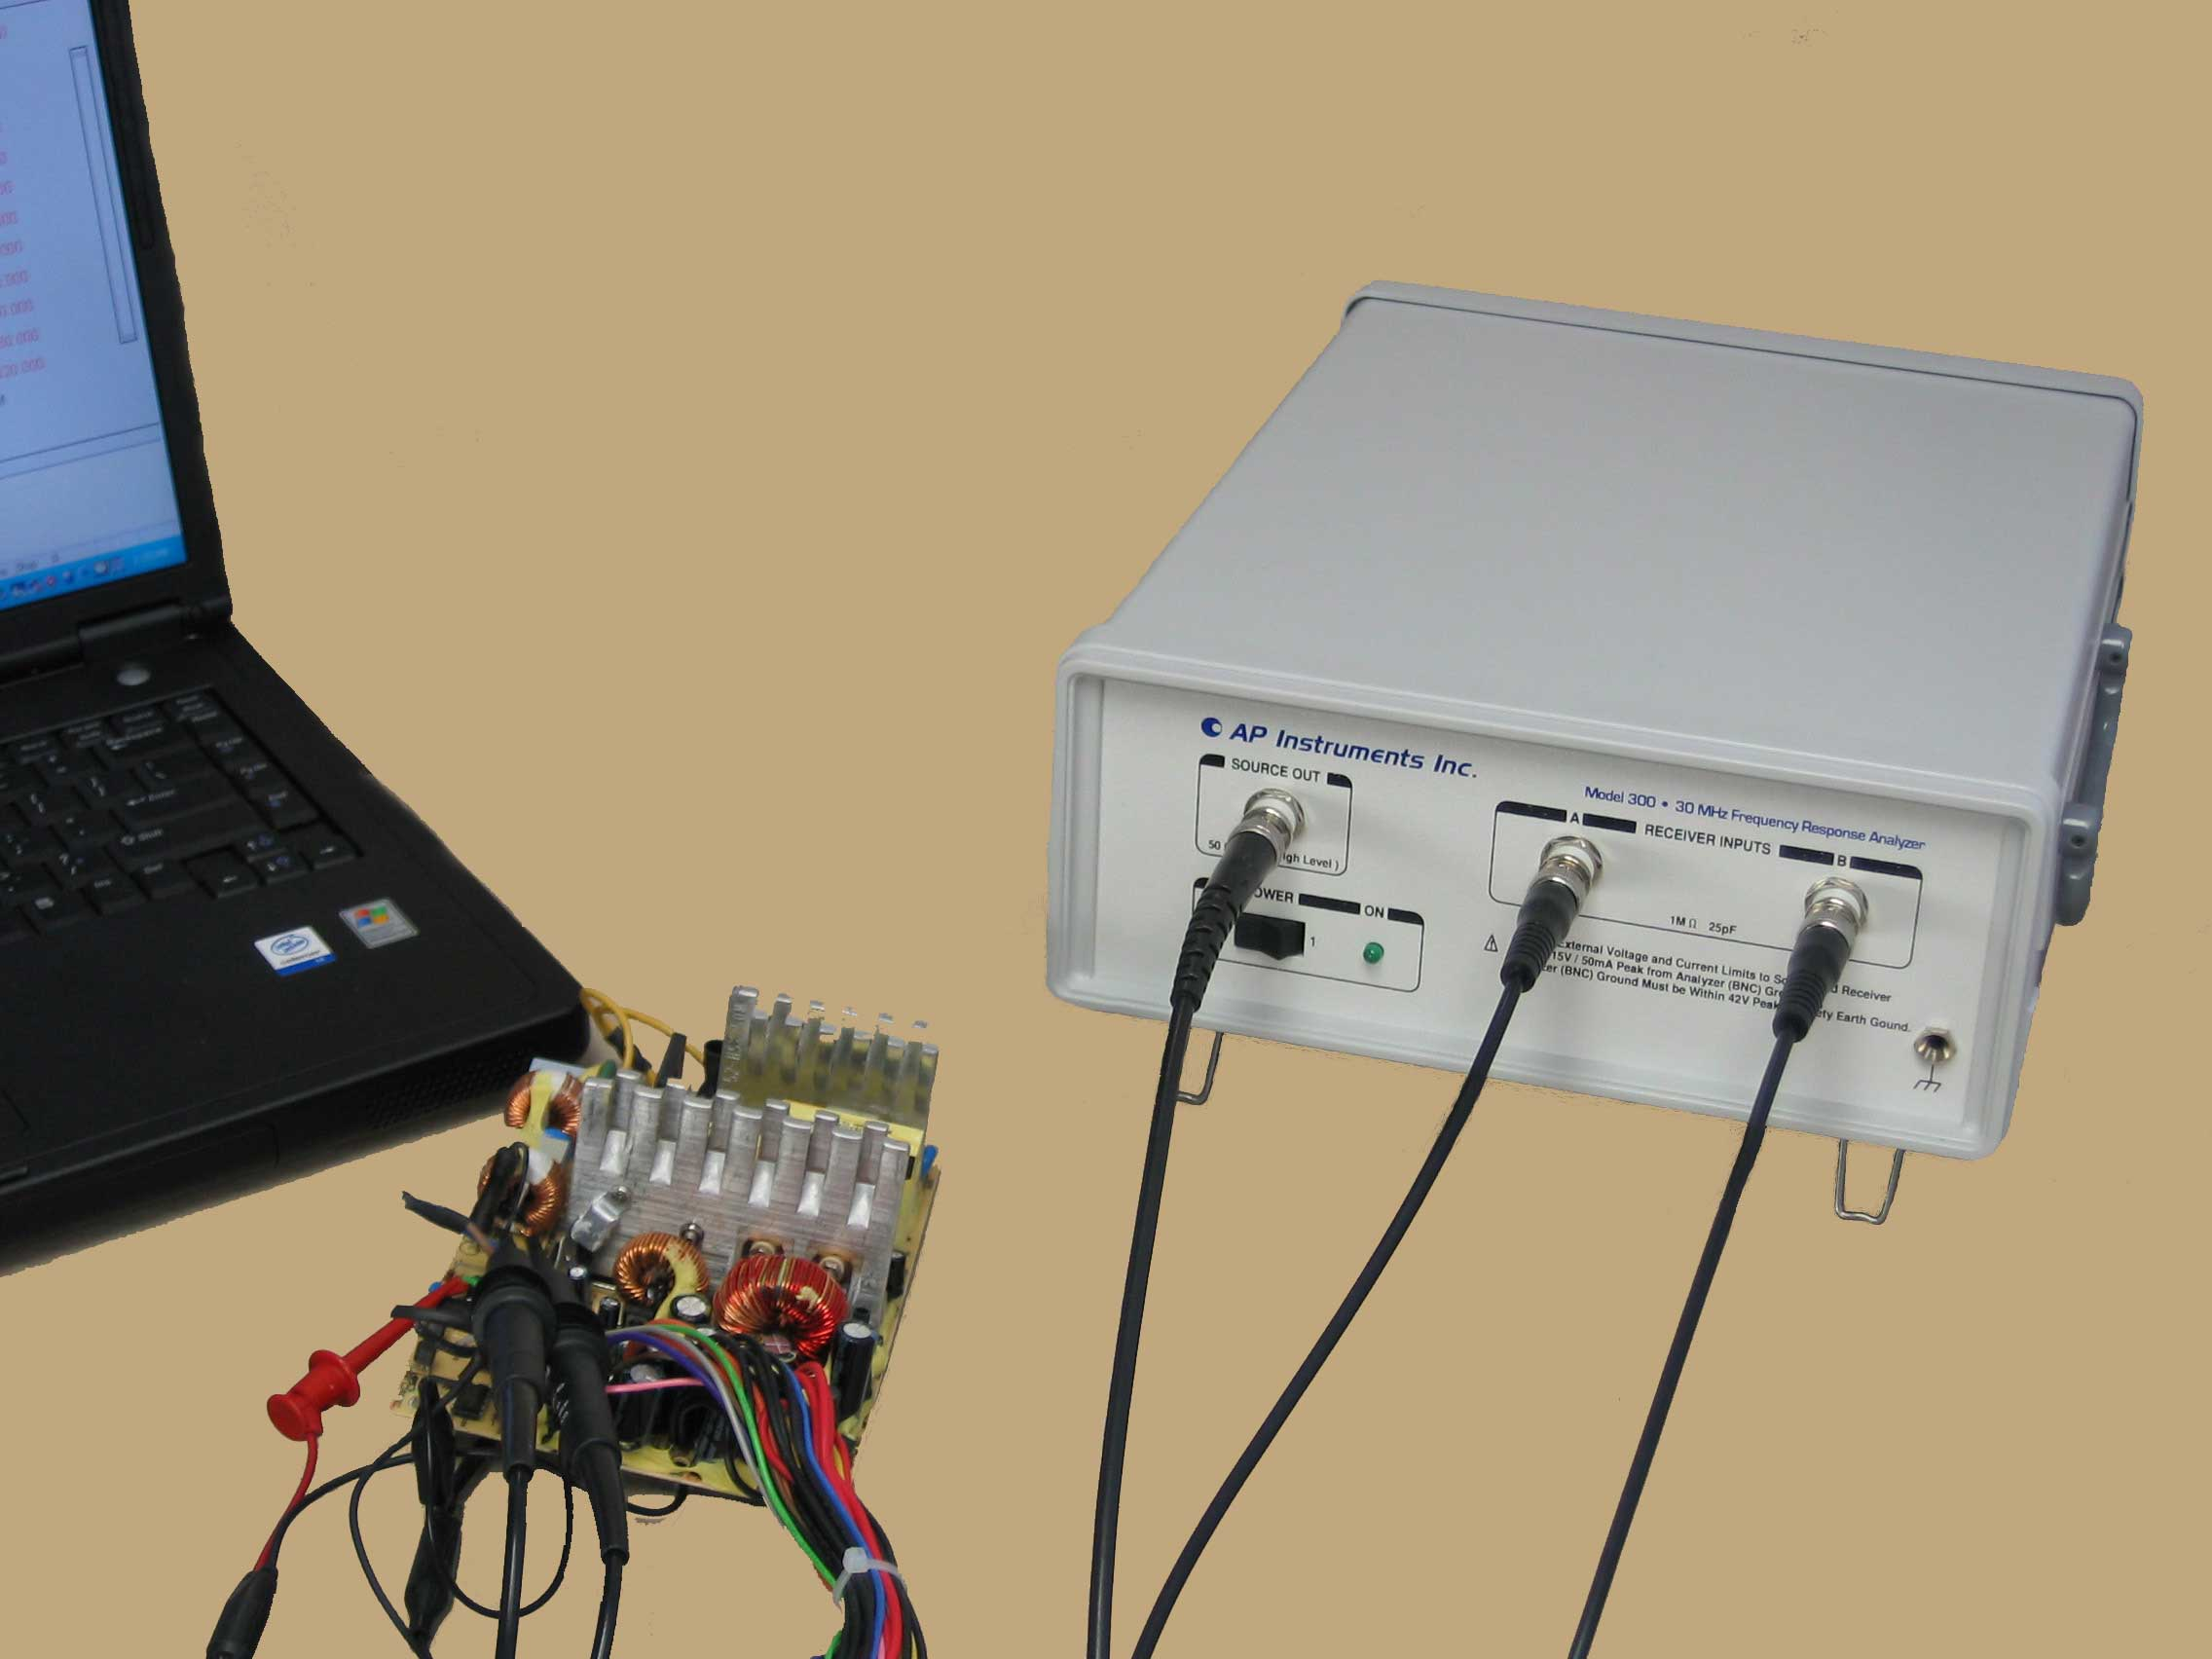 Frequency Response Analyzer : Ap instruments products